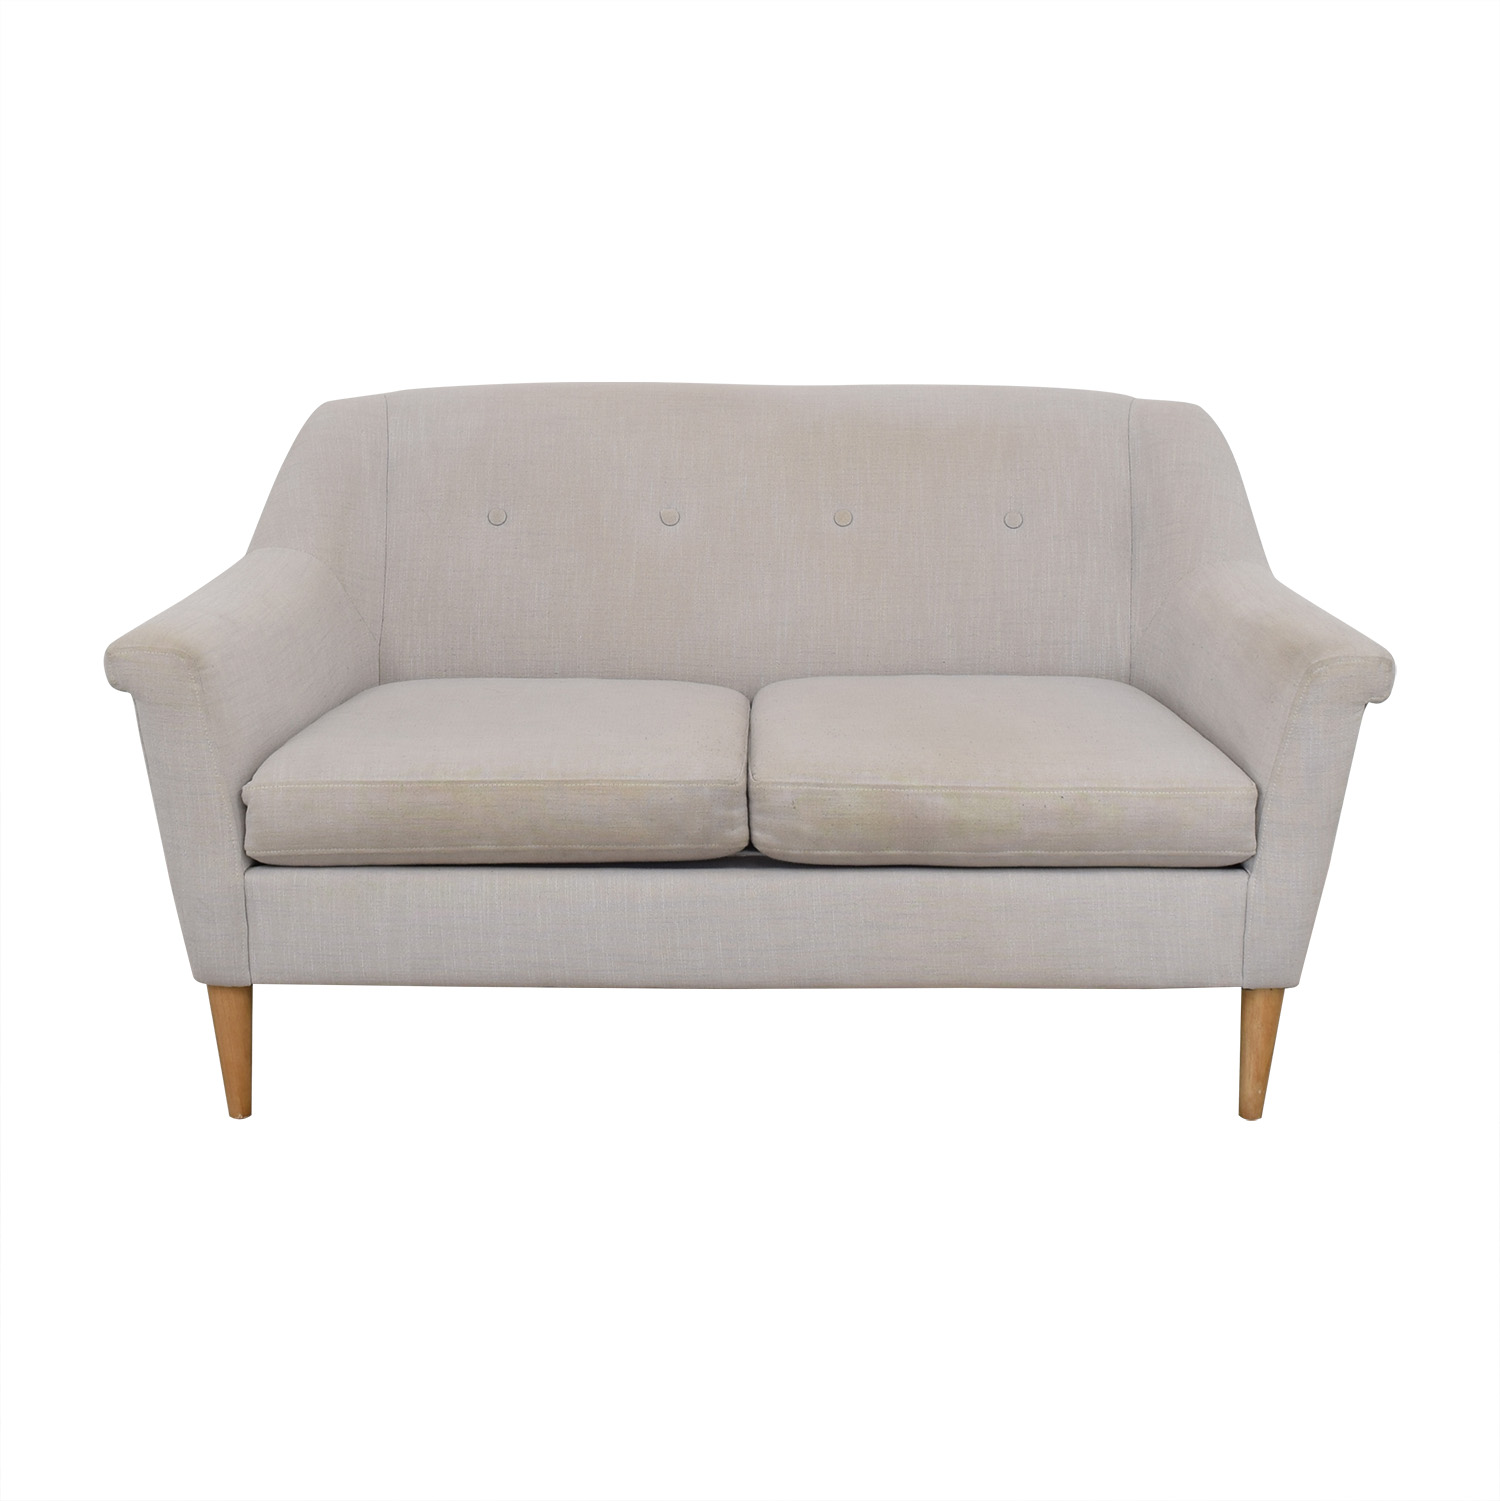 West Elm West Elm Finn Loveseat coupon